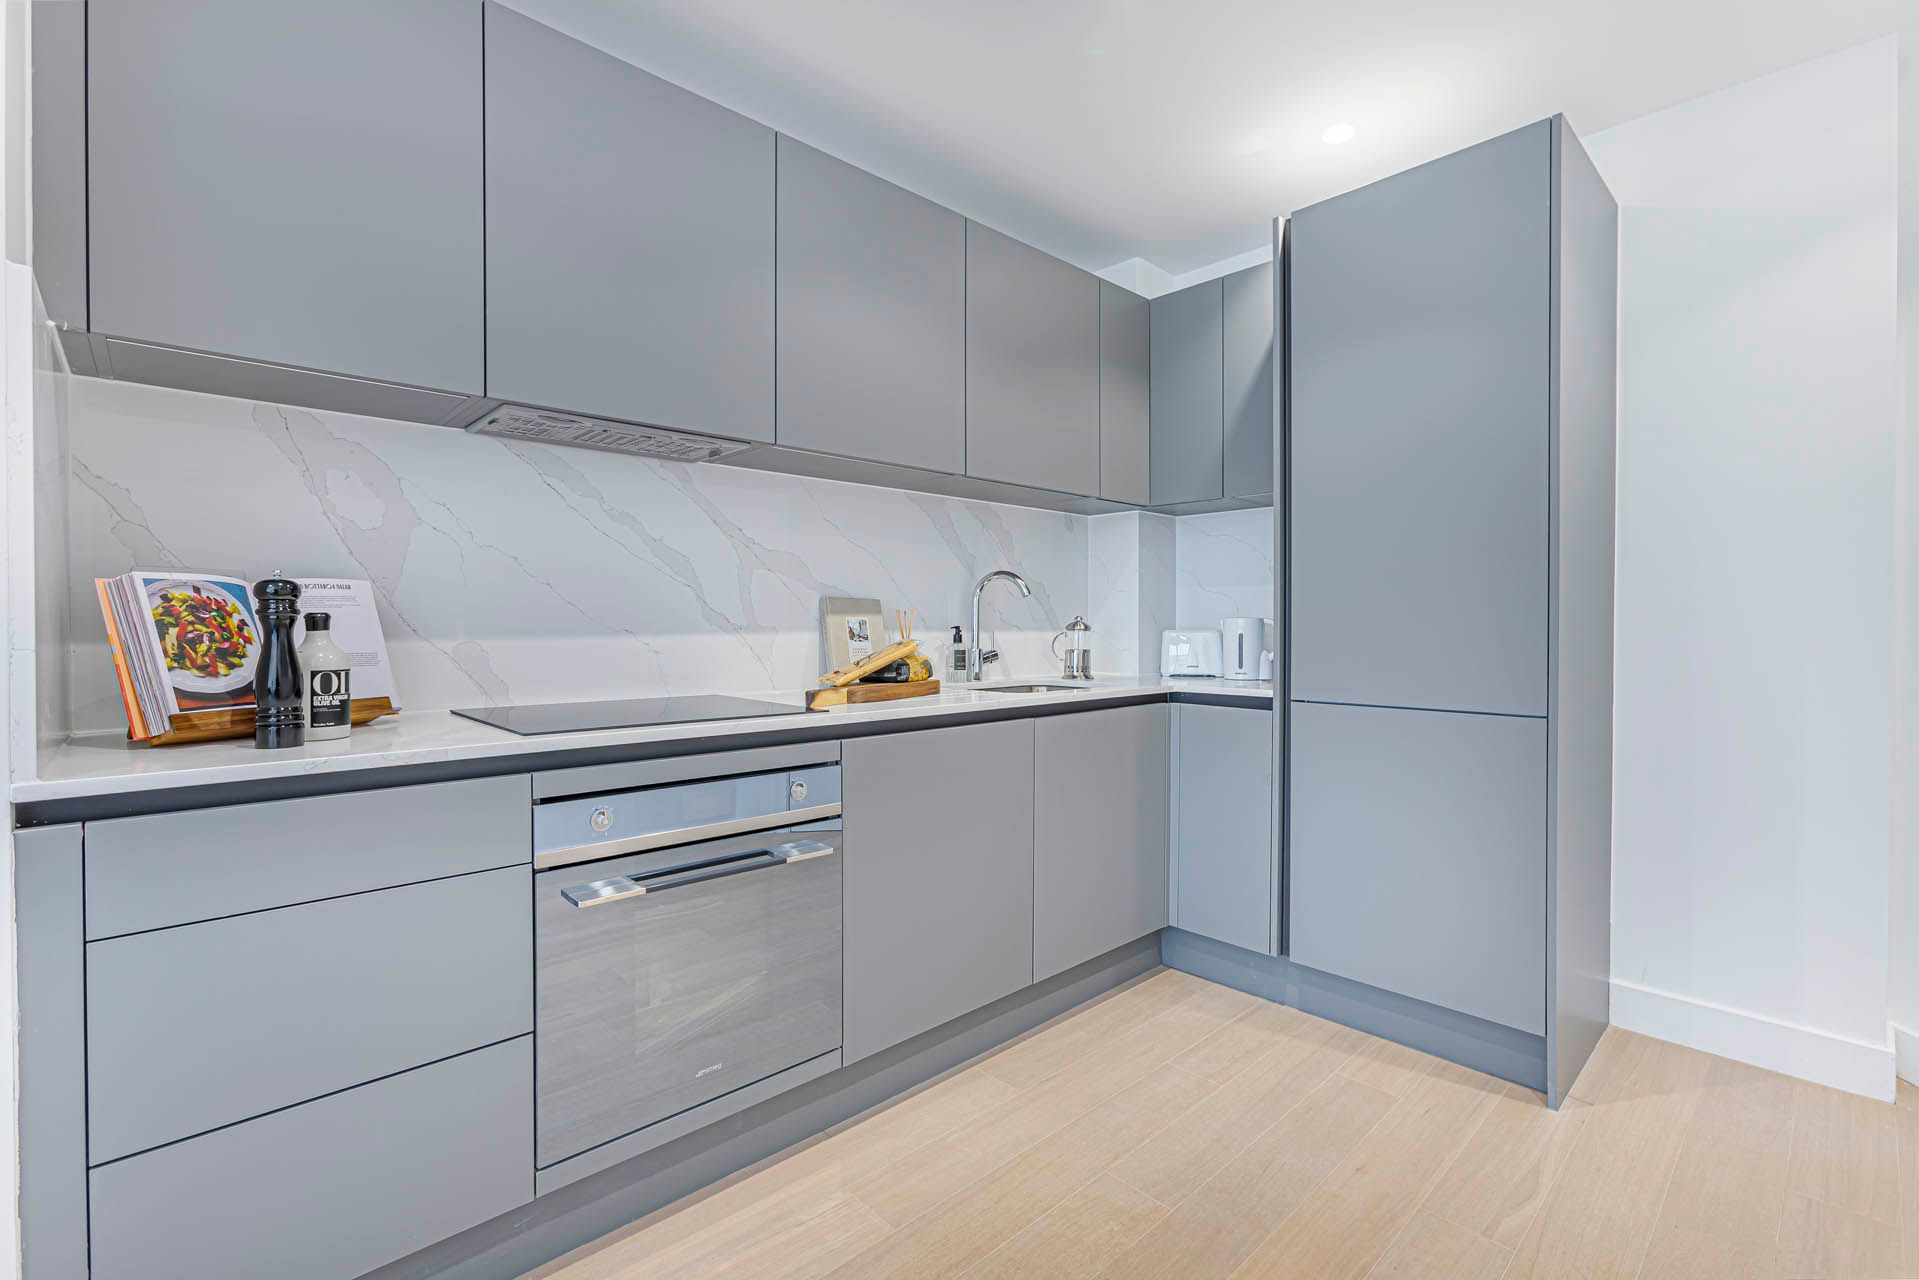 1 Bedroom apartment to rent in London SKI-FH-0034